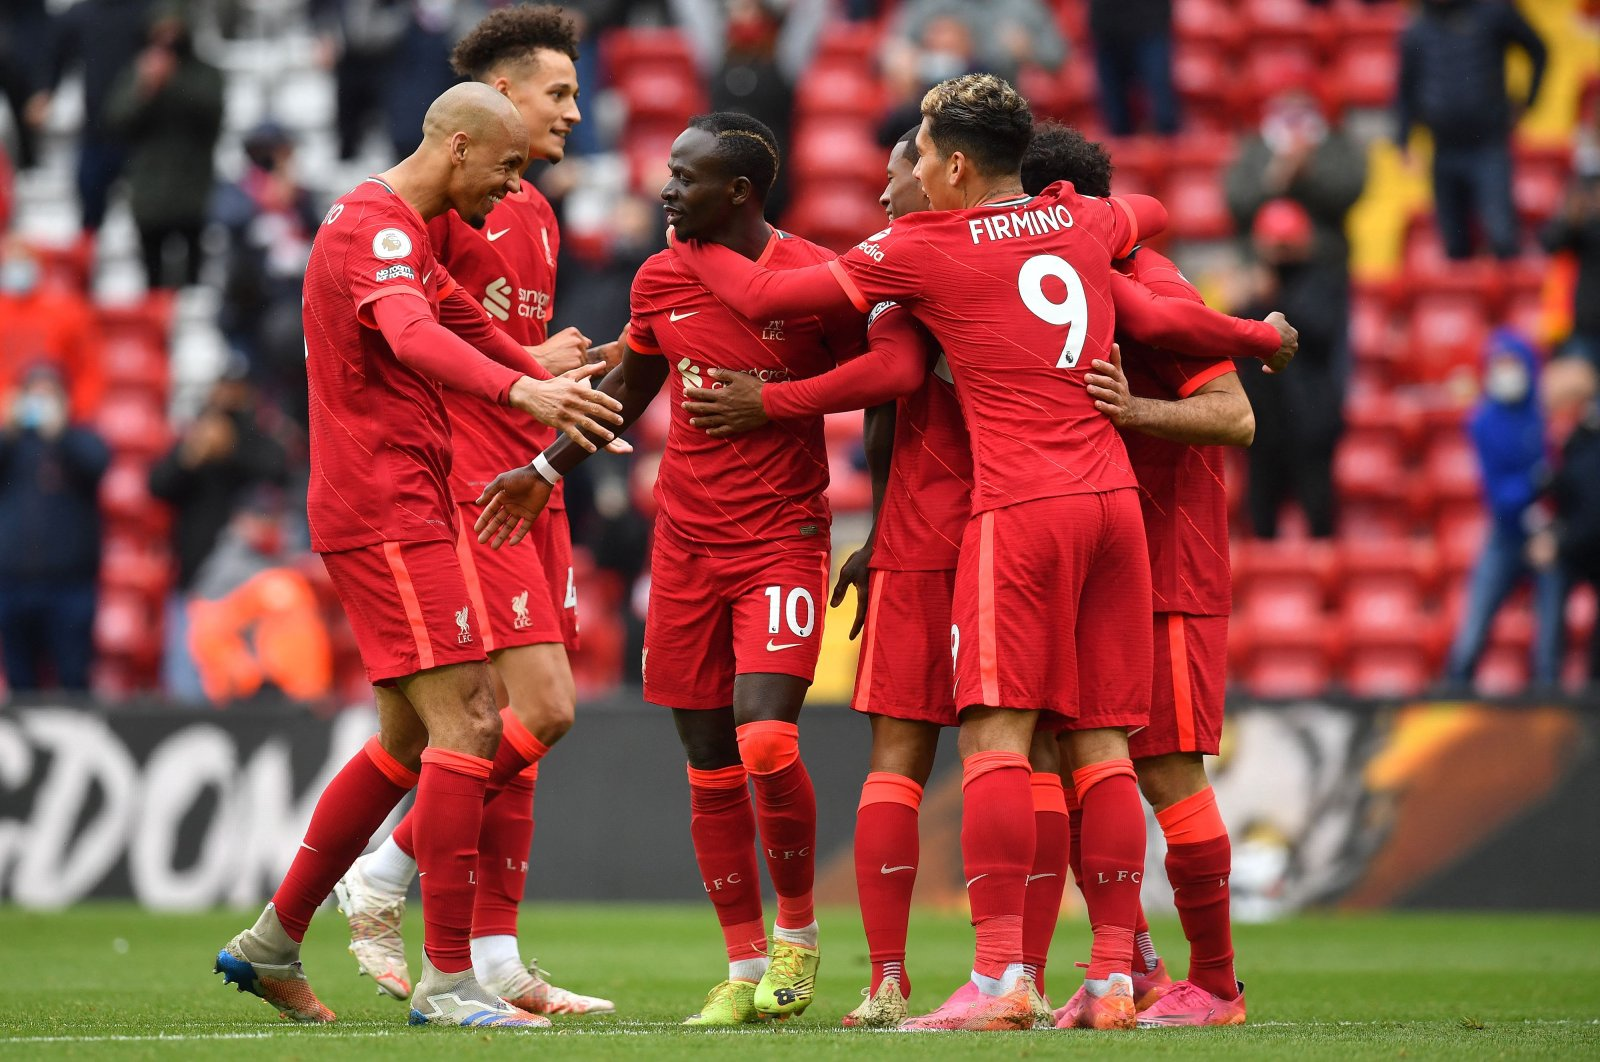 Liverpool's Senegalese striker Sadio Mane (C) celebrates scoring his team's second goal with his teammates during the English Premier League football match between Liverpool and Crystal Palace at Anfield in Liverpool, northwest England, the U.K., May 23, 2021. (AFP Photo)